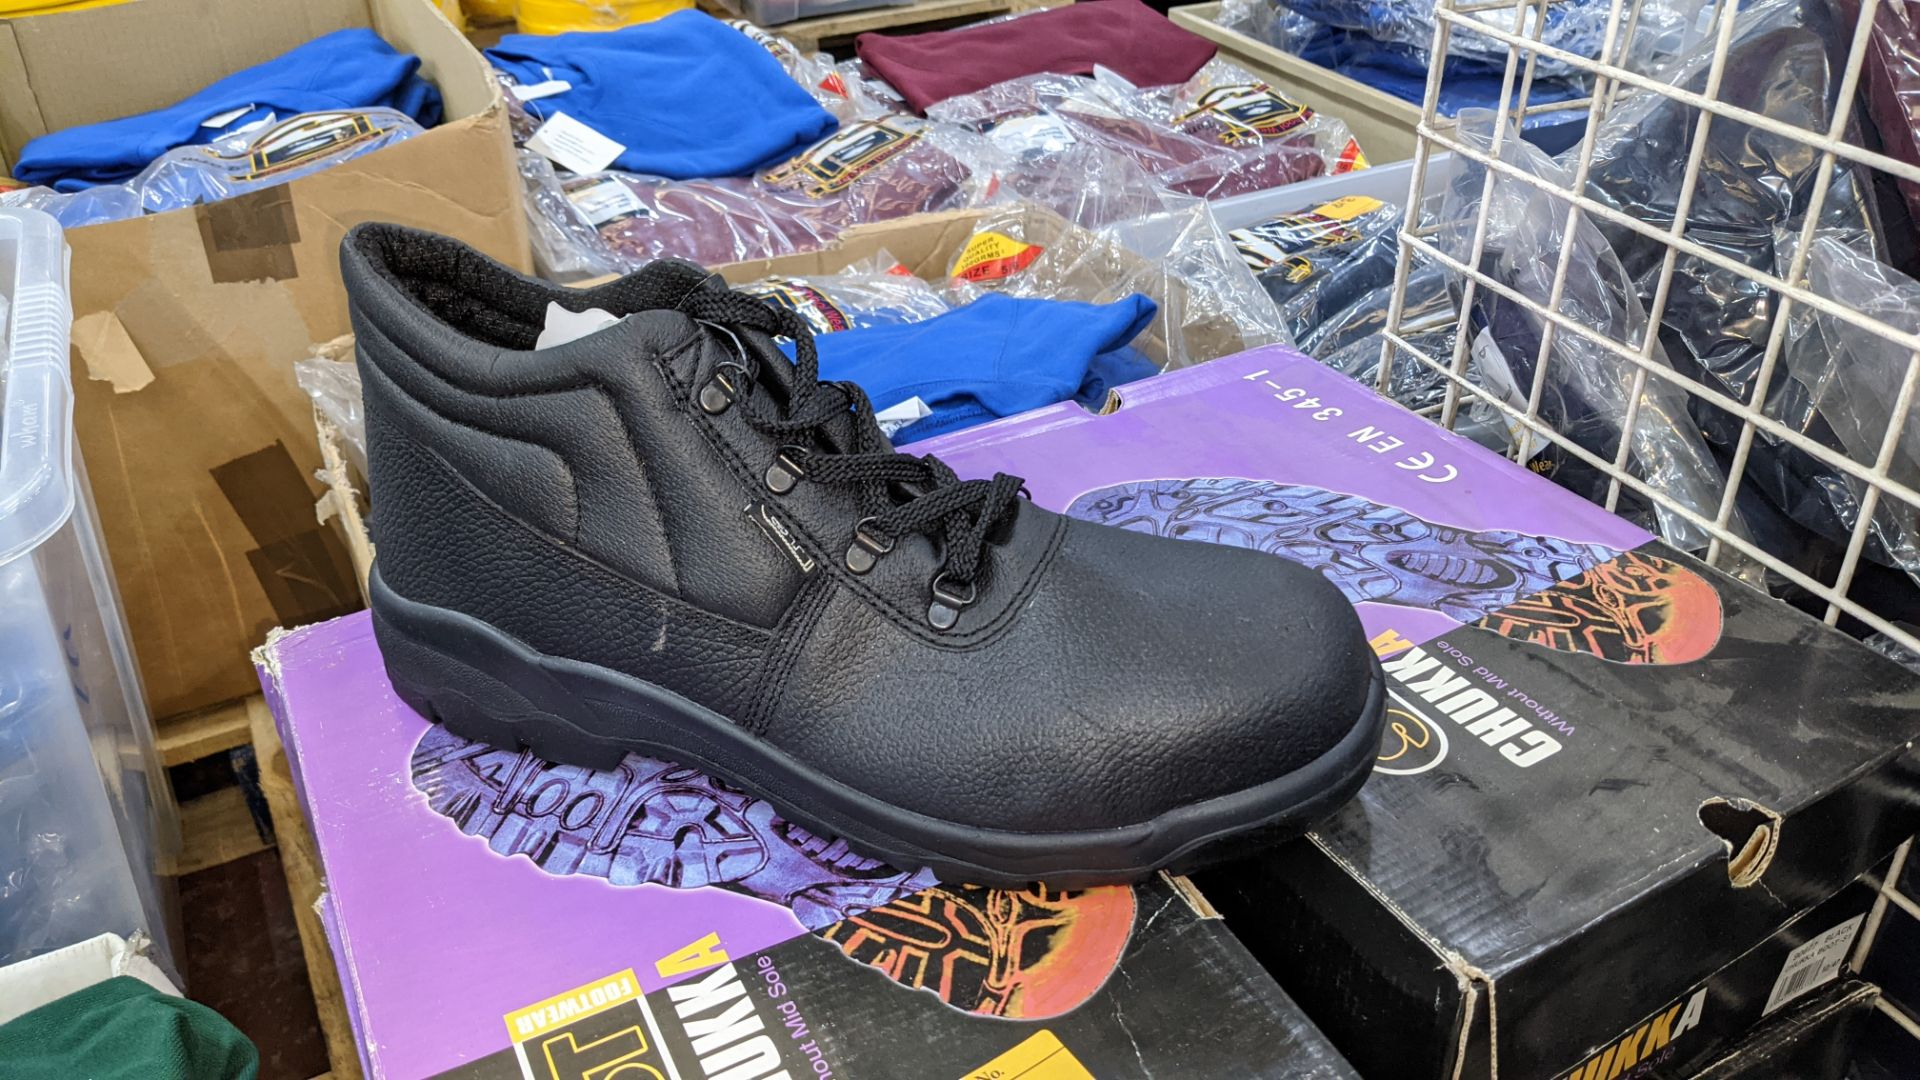 6 pairs of Chukka protective work boots - Image 4 of 6